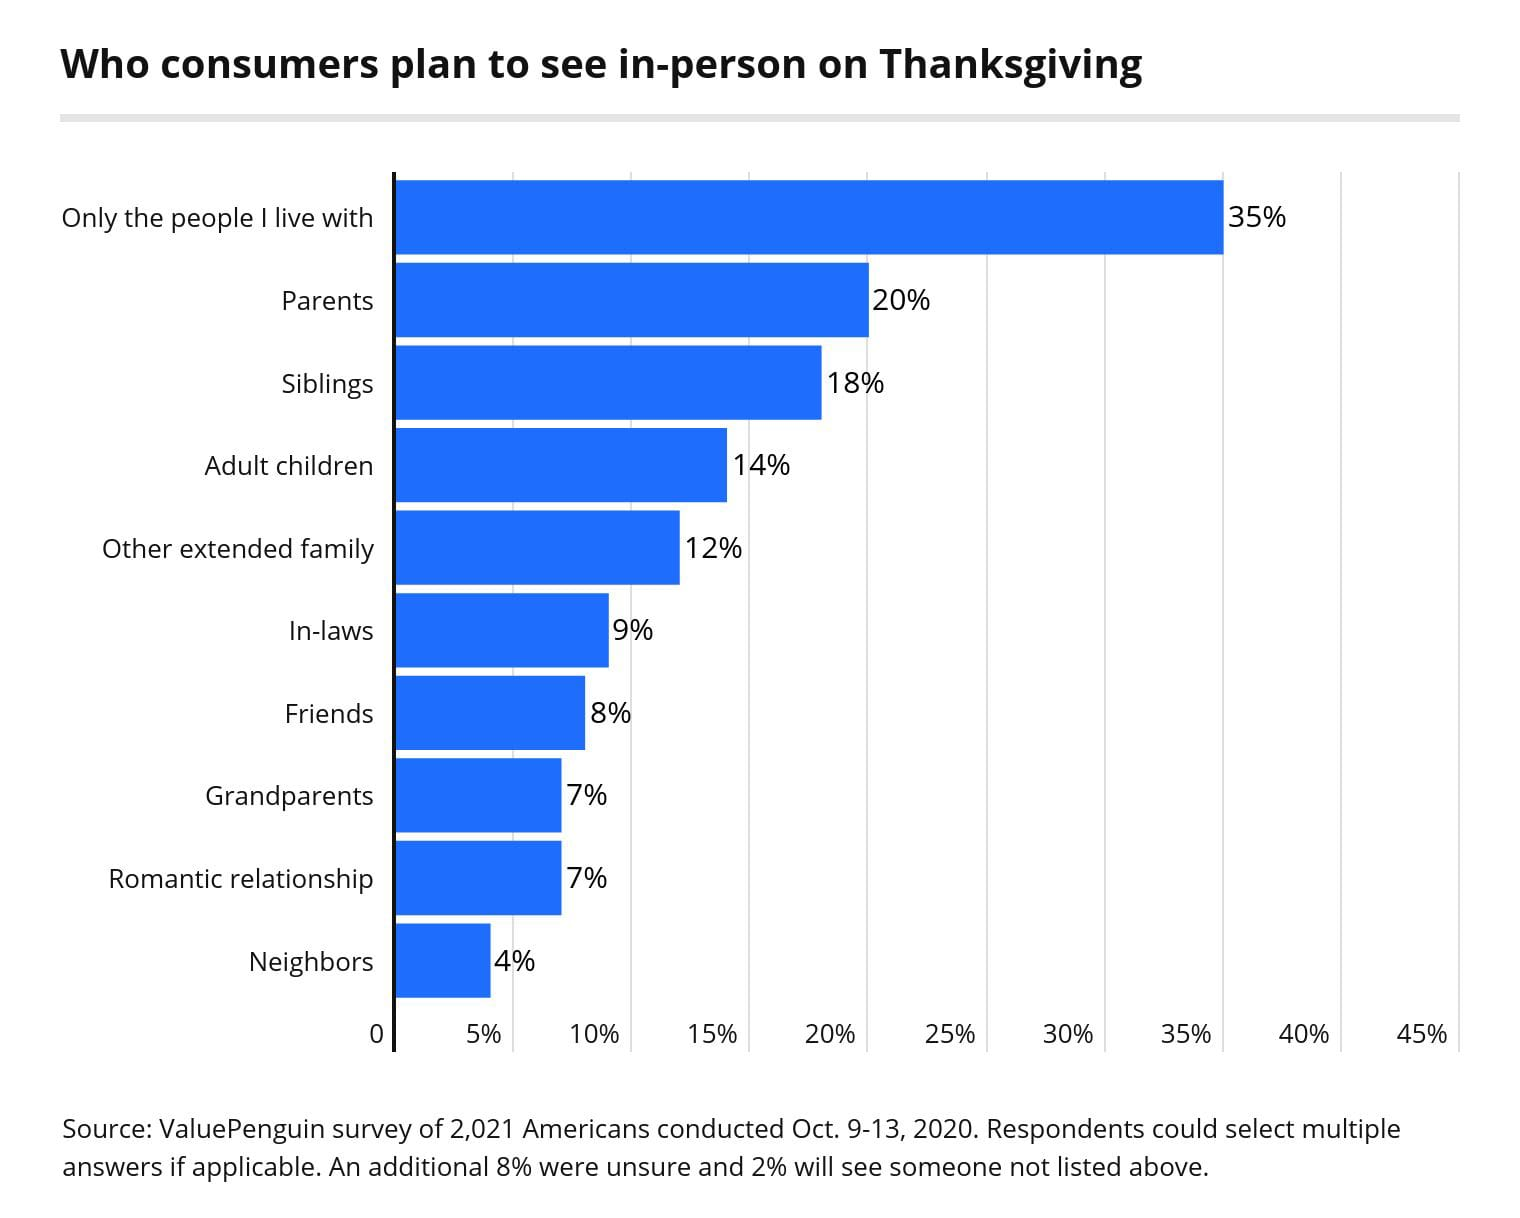 Who consumers plan to see in person on Thanksgiving